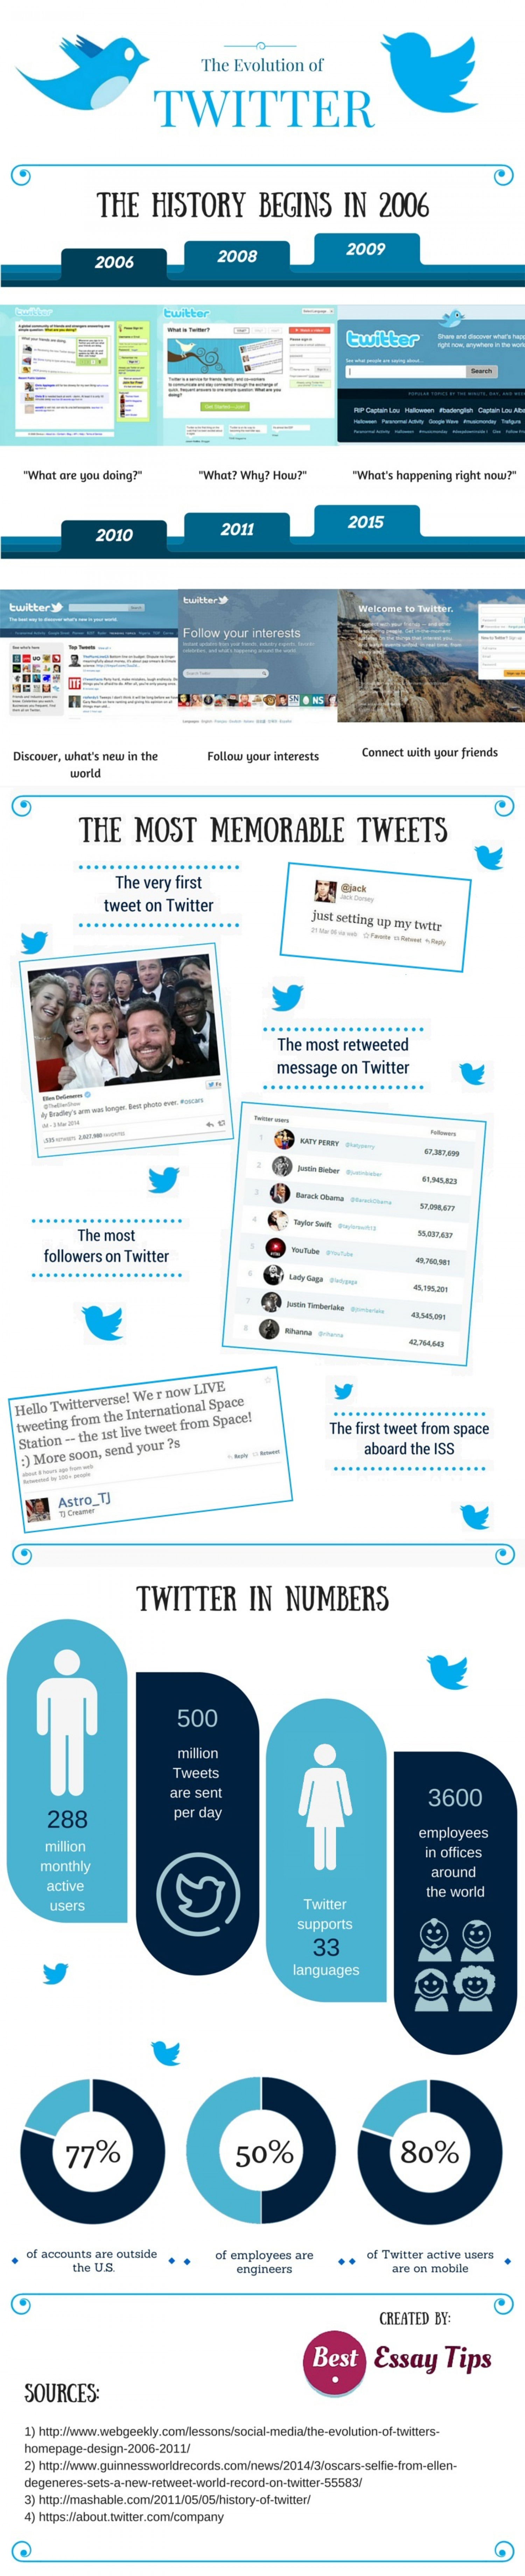 The Evolution of Twitter Infographic